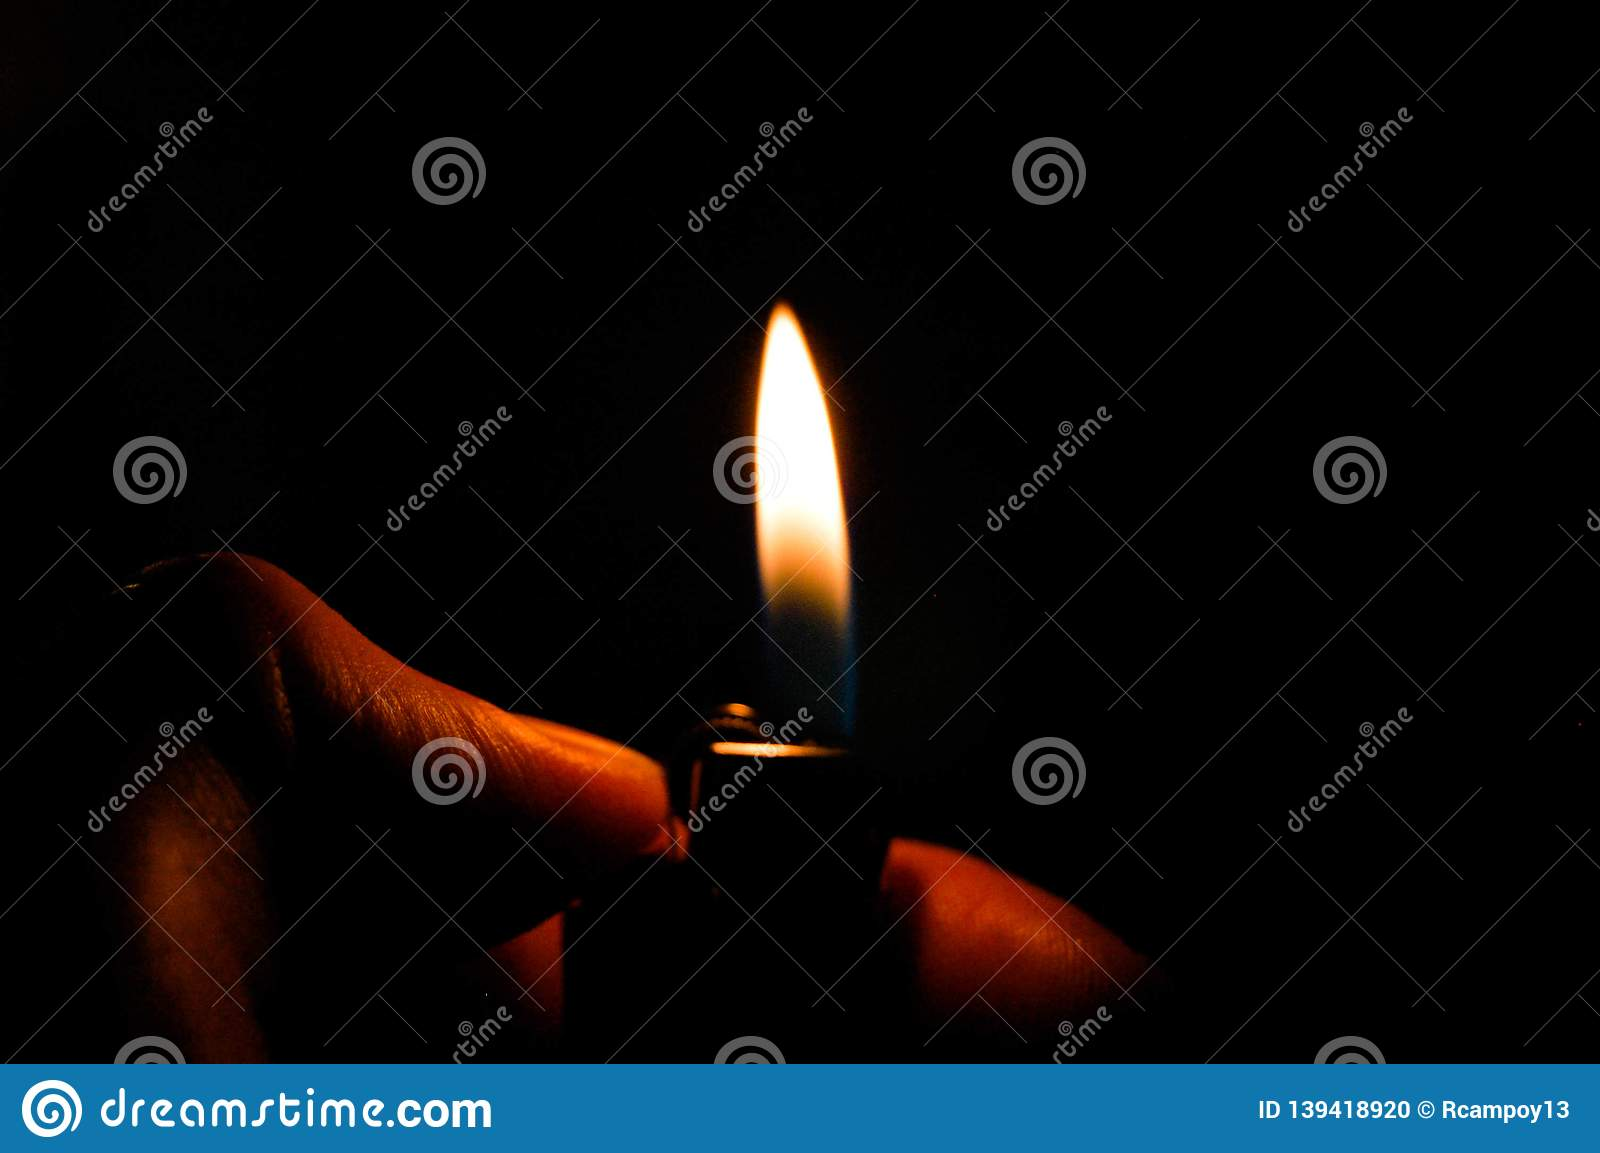 A flame in a dark room